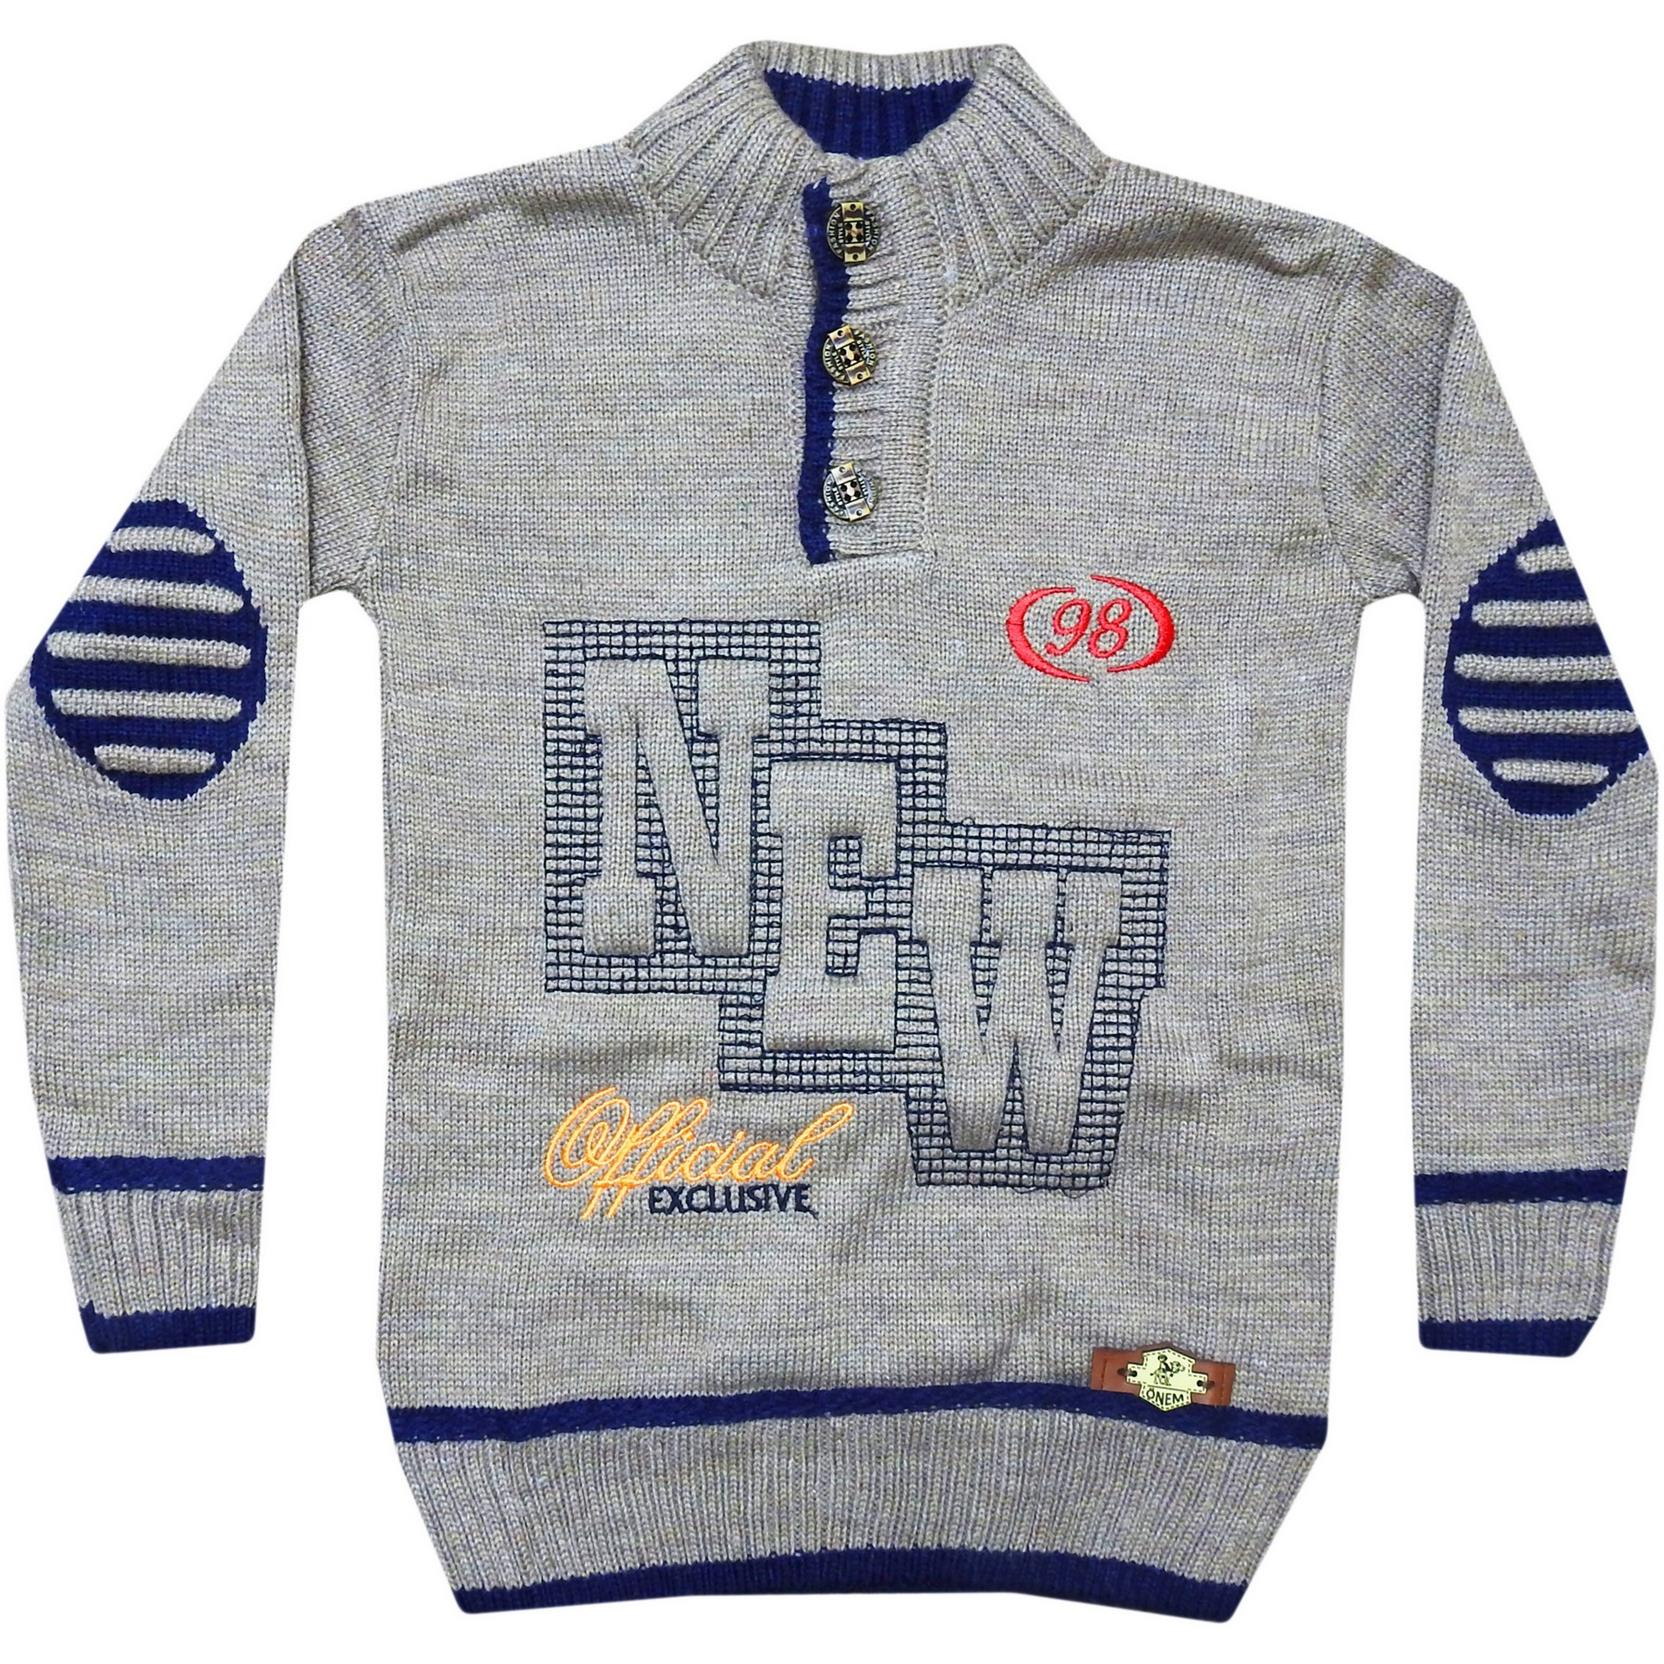 306 Wholesale Knit Sweater For Boy Kids With New Embroidered 5-7-9 Age